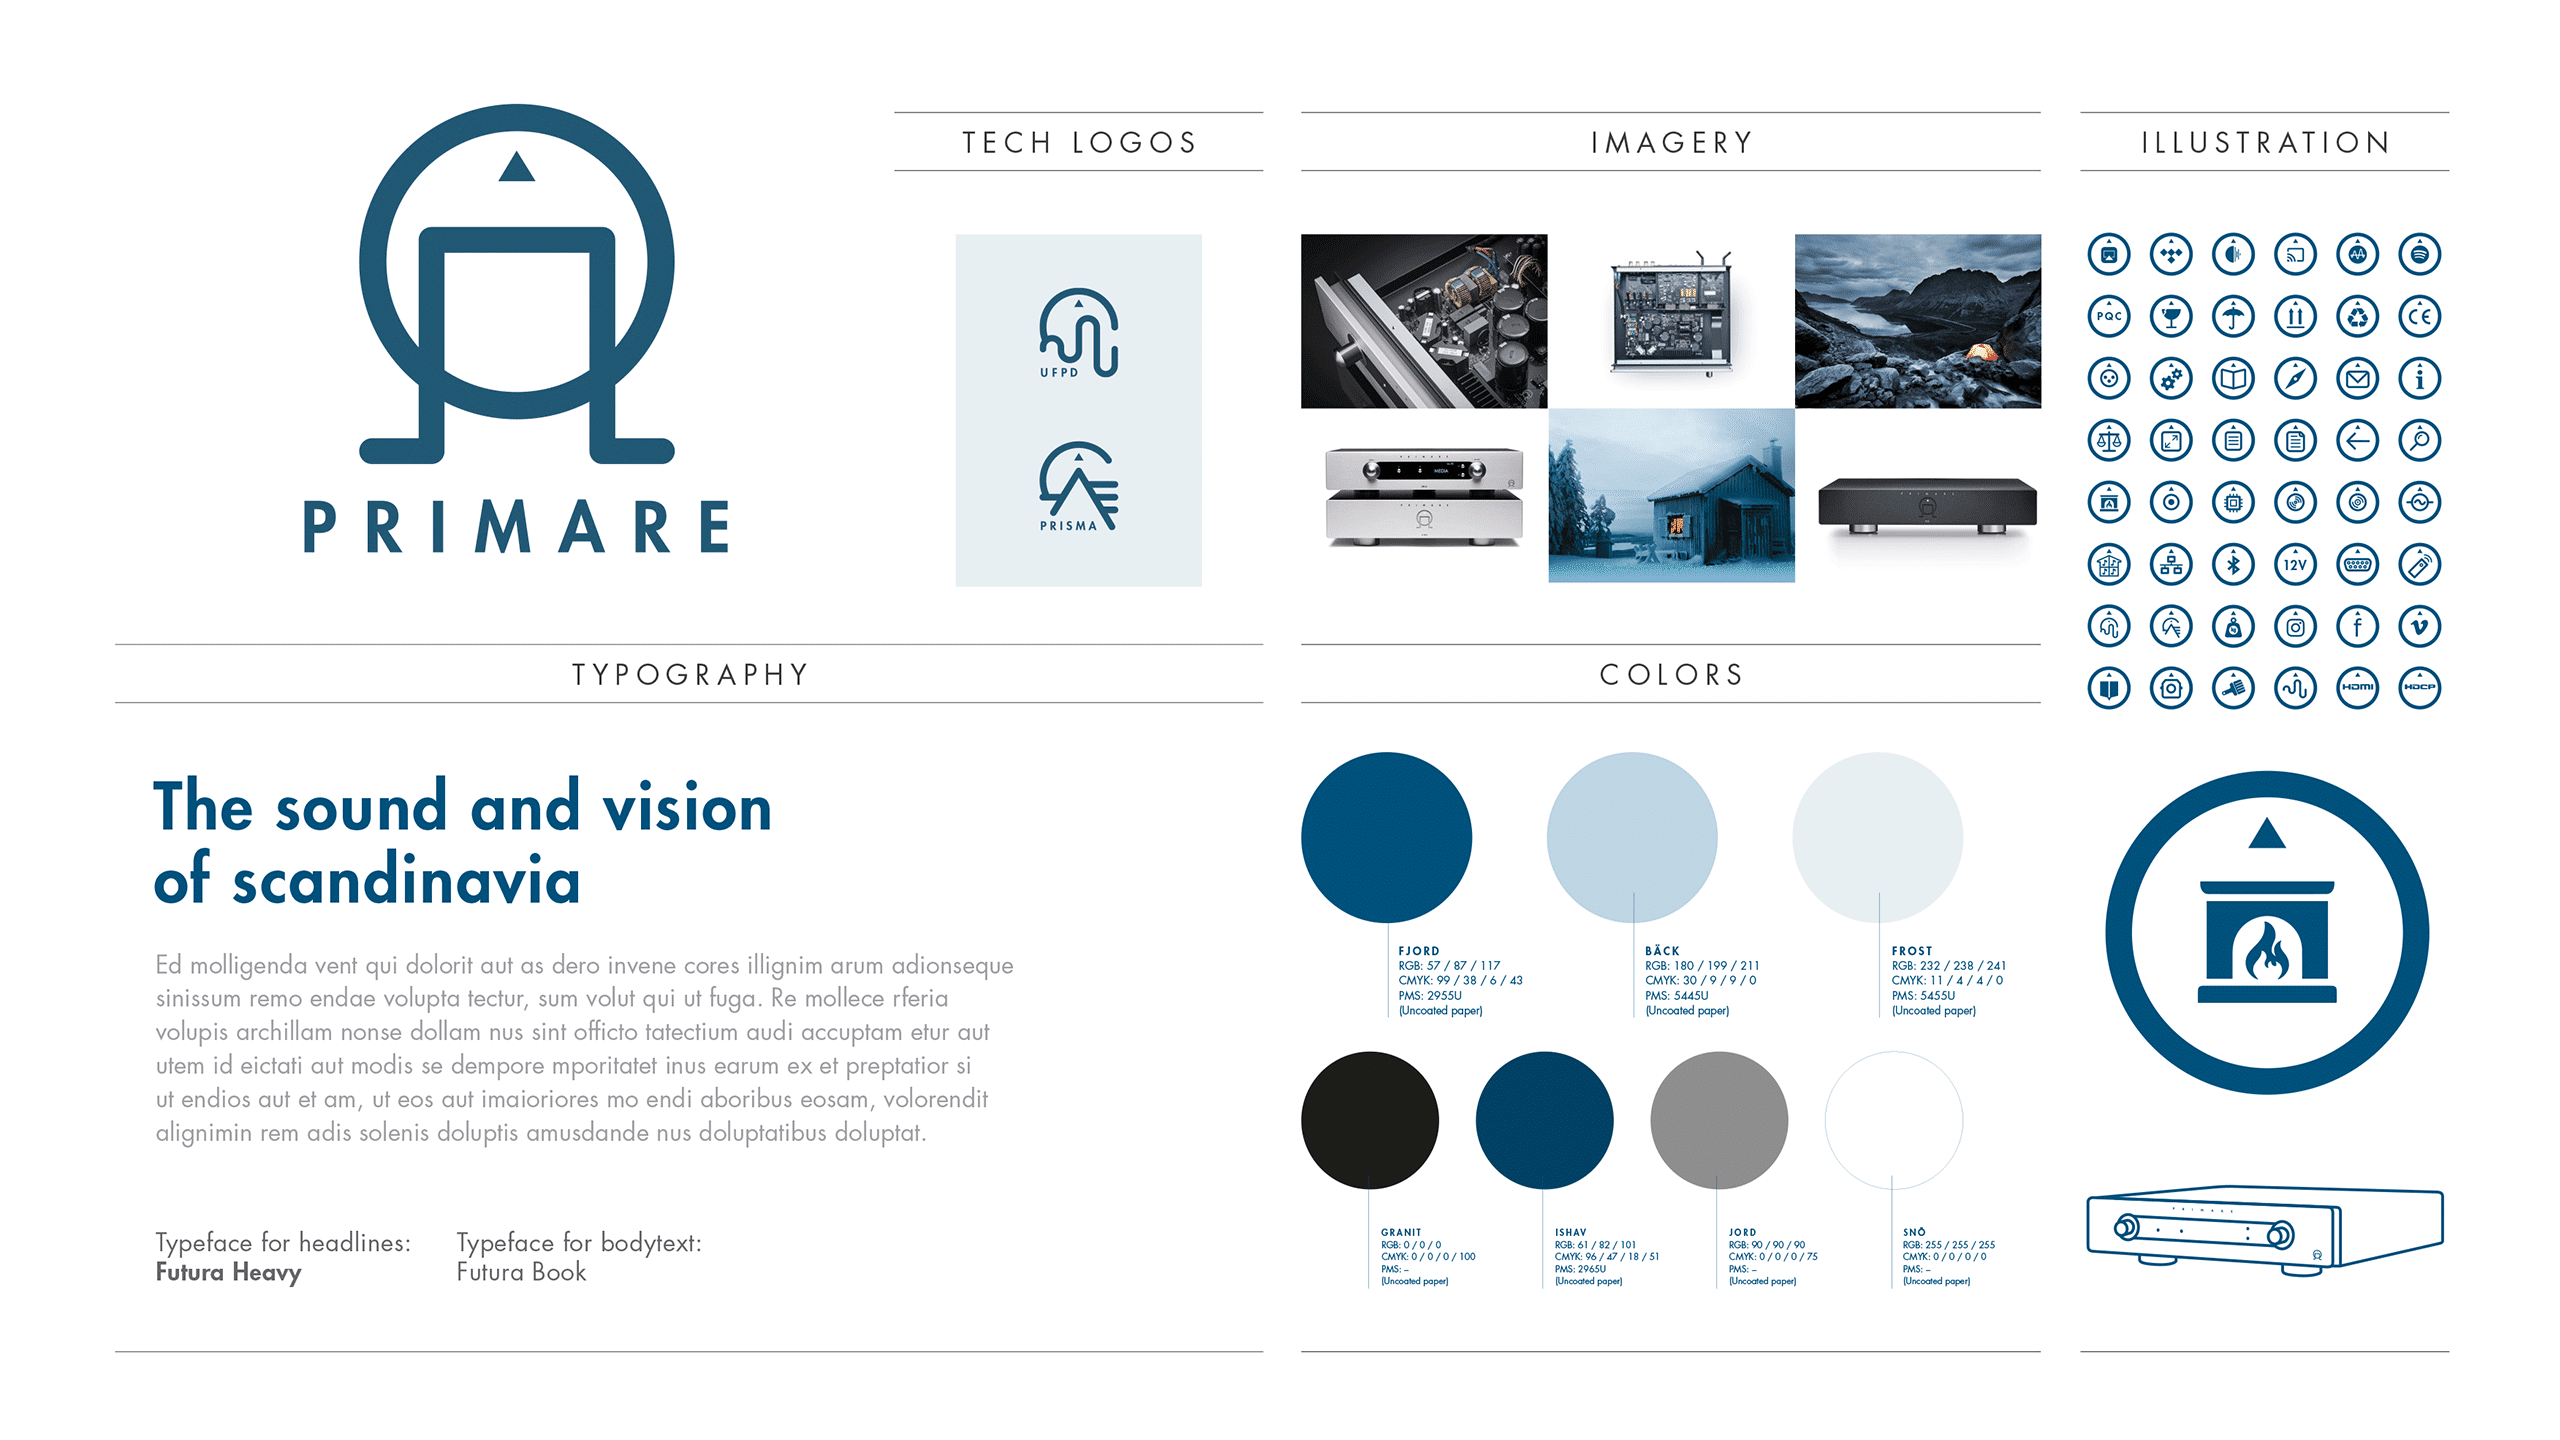 Visual identity overview for Primare